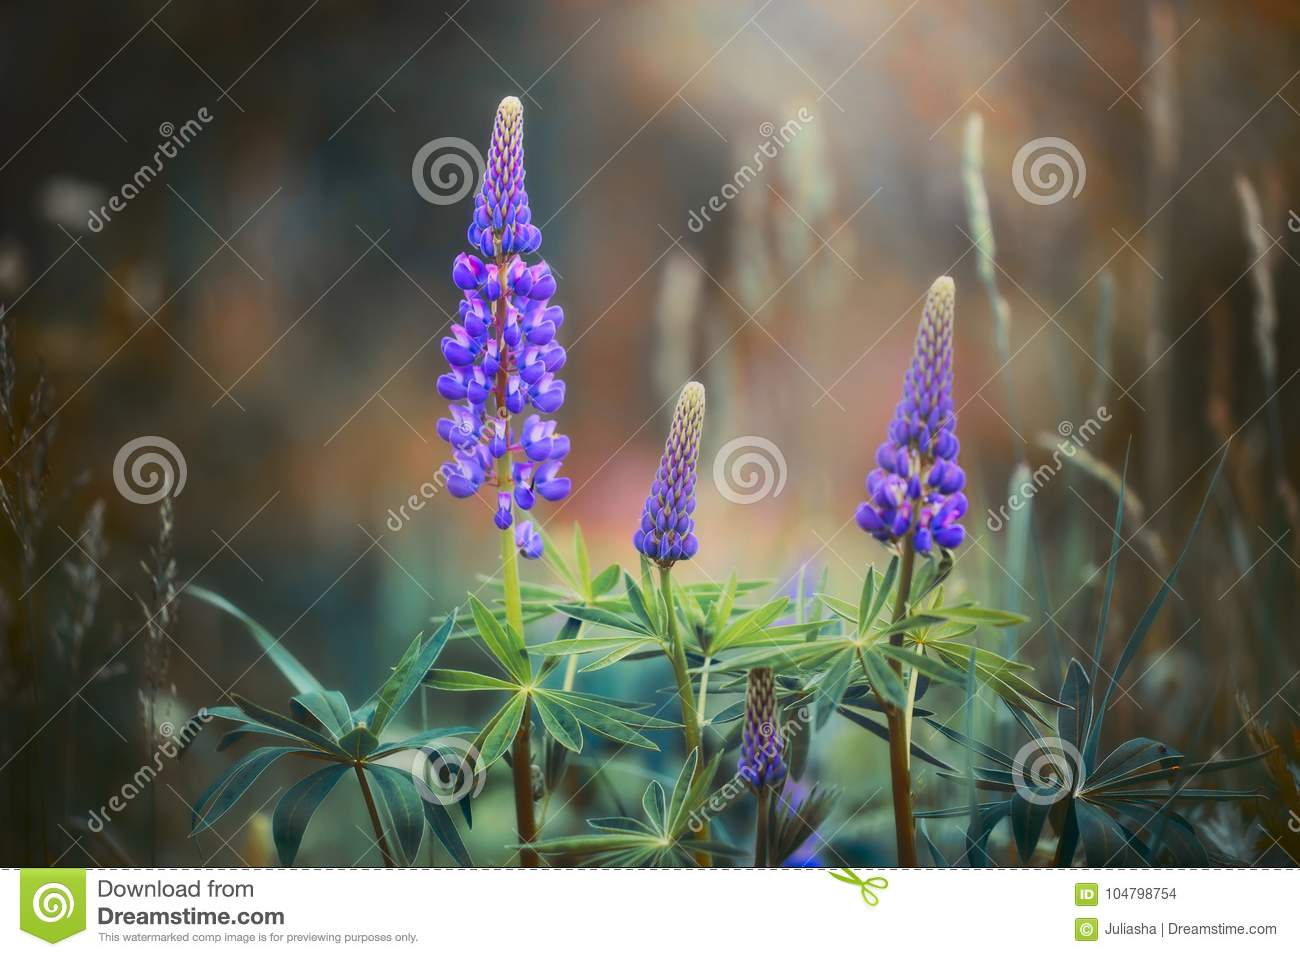 Violet Lupines in meadow